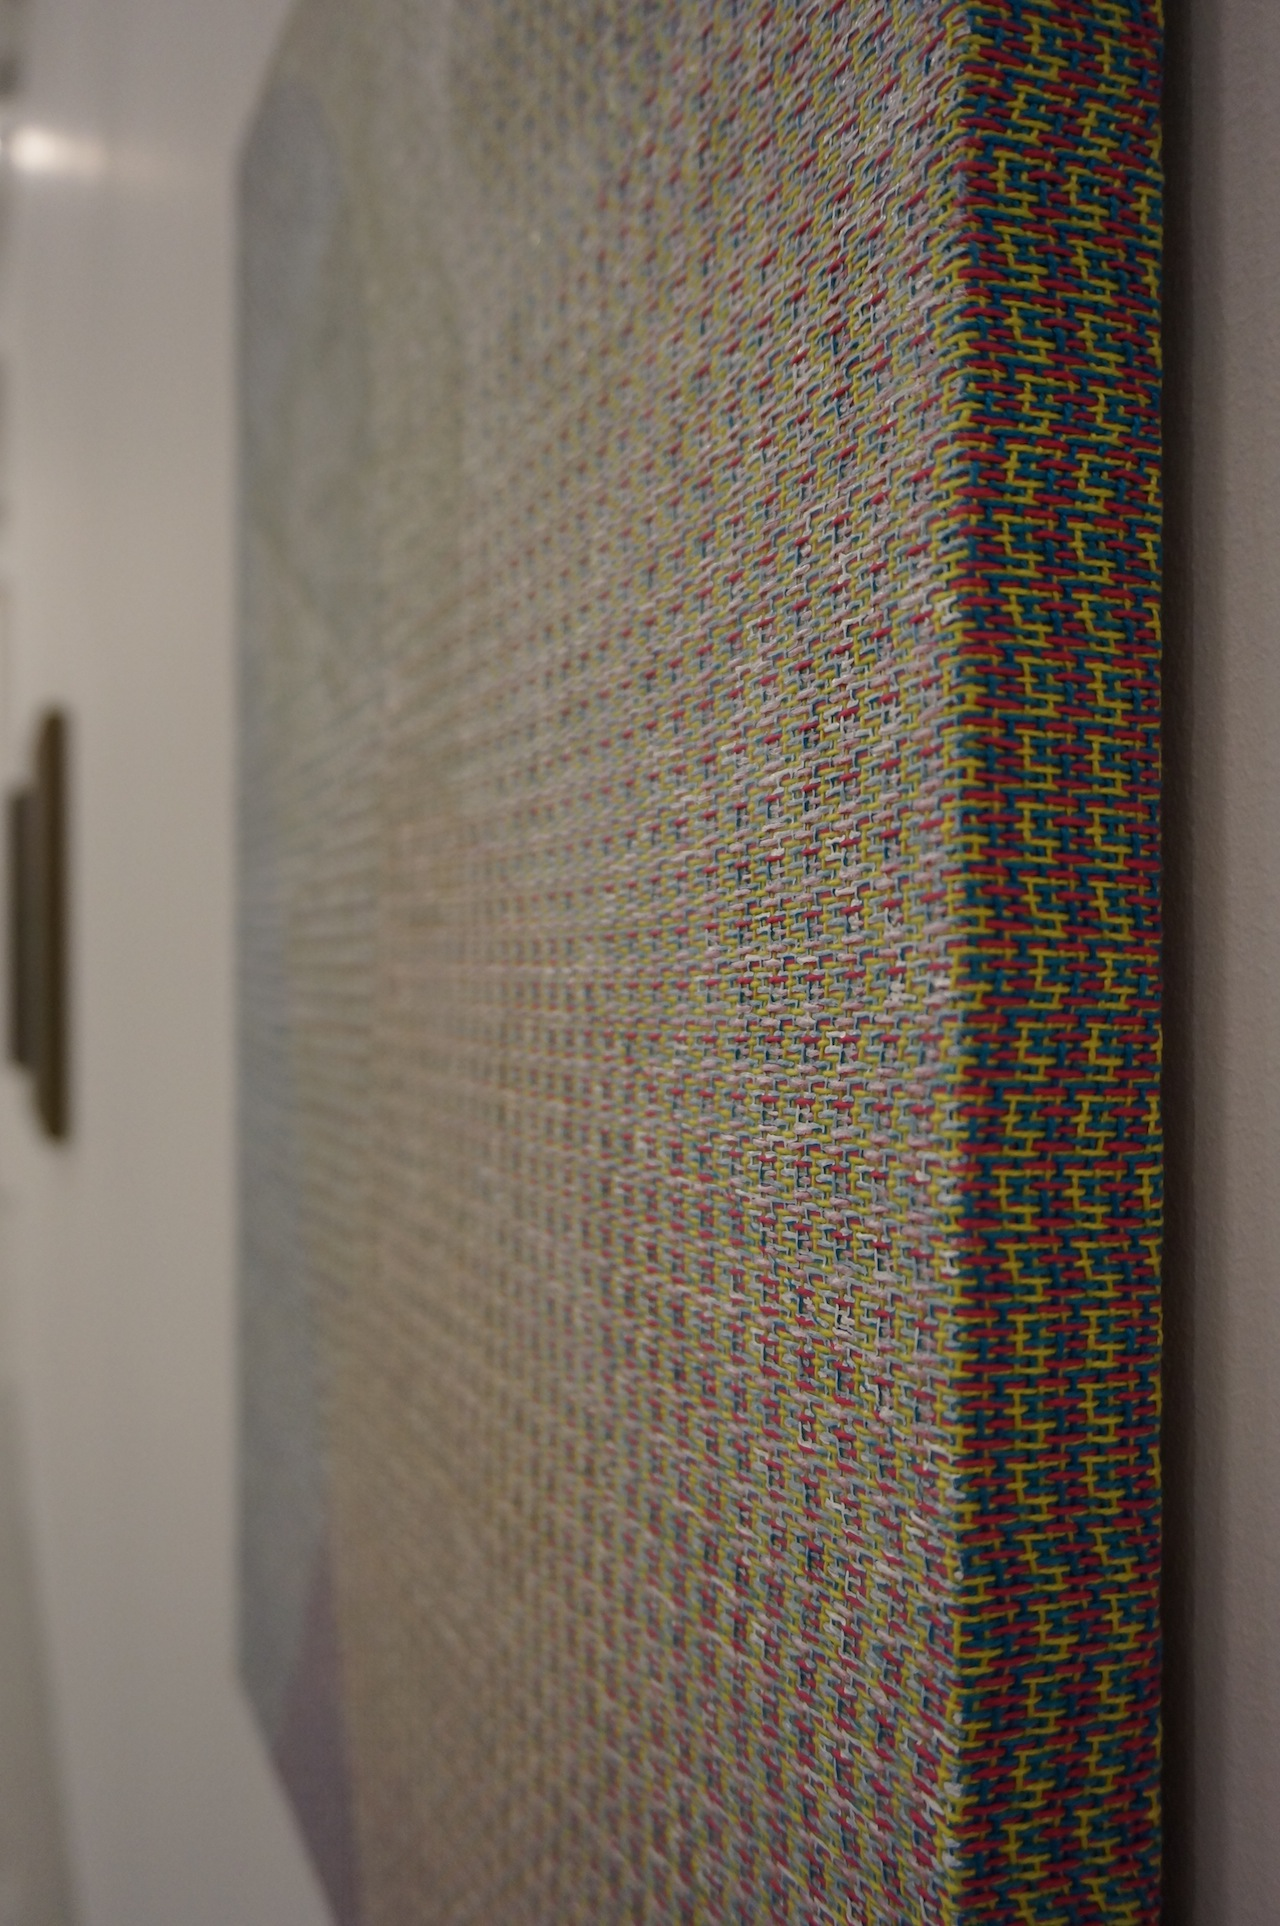 Detail of a work by Mark Barrow and Sarah Parke